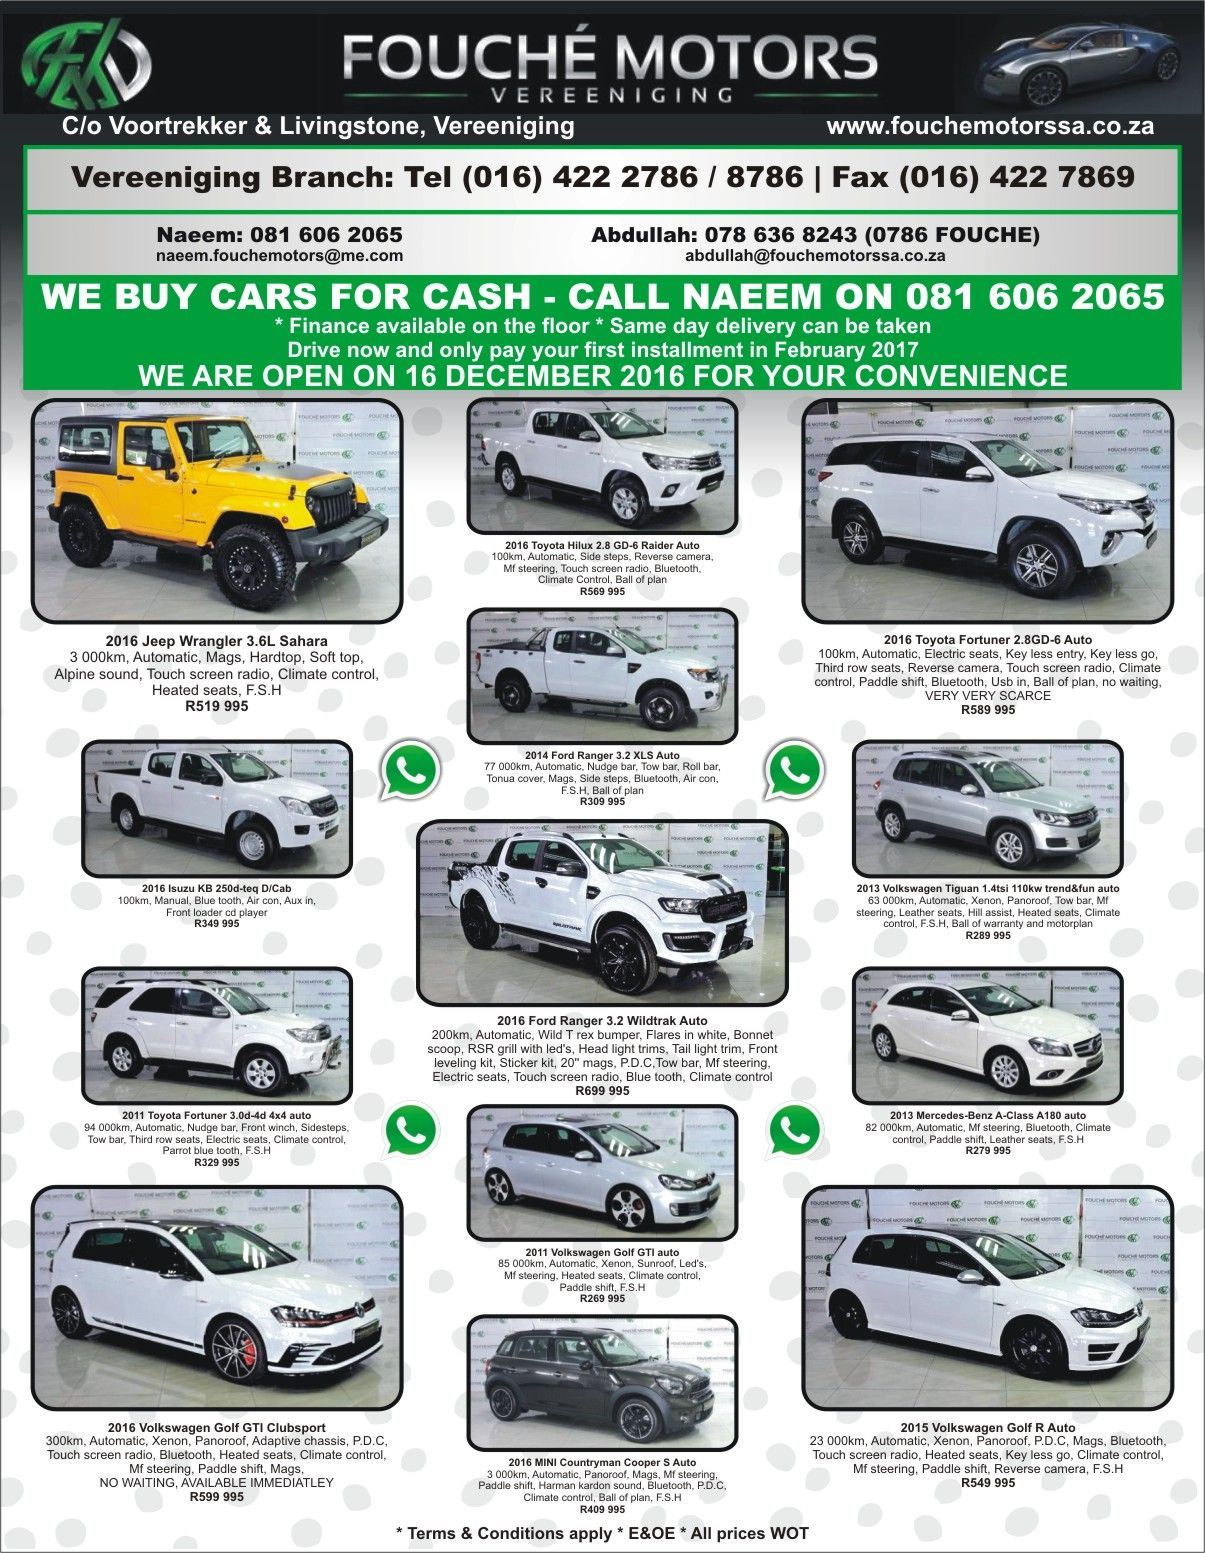 We buy cars for cash @ Fouche Motors Vereeniging !! #We can #Help ...